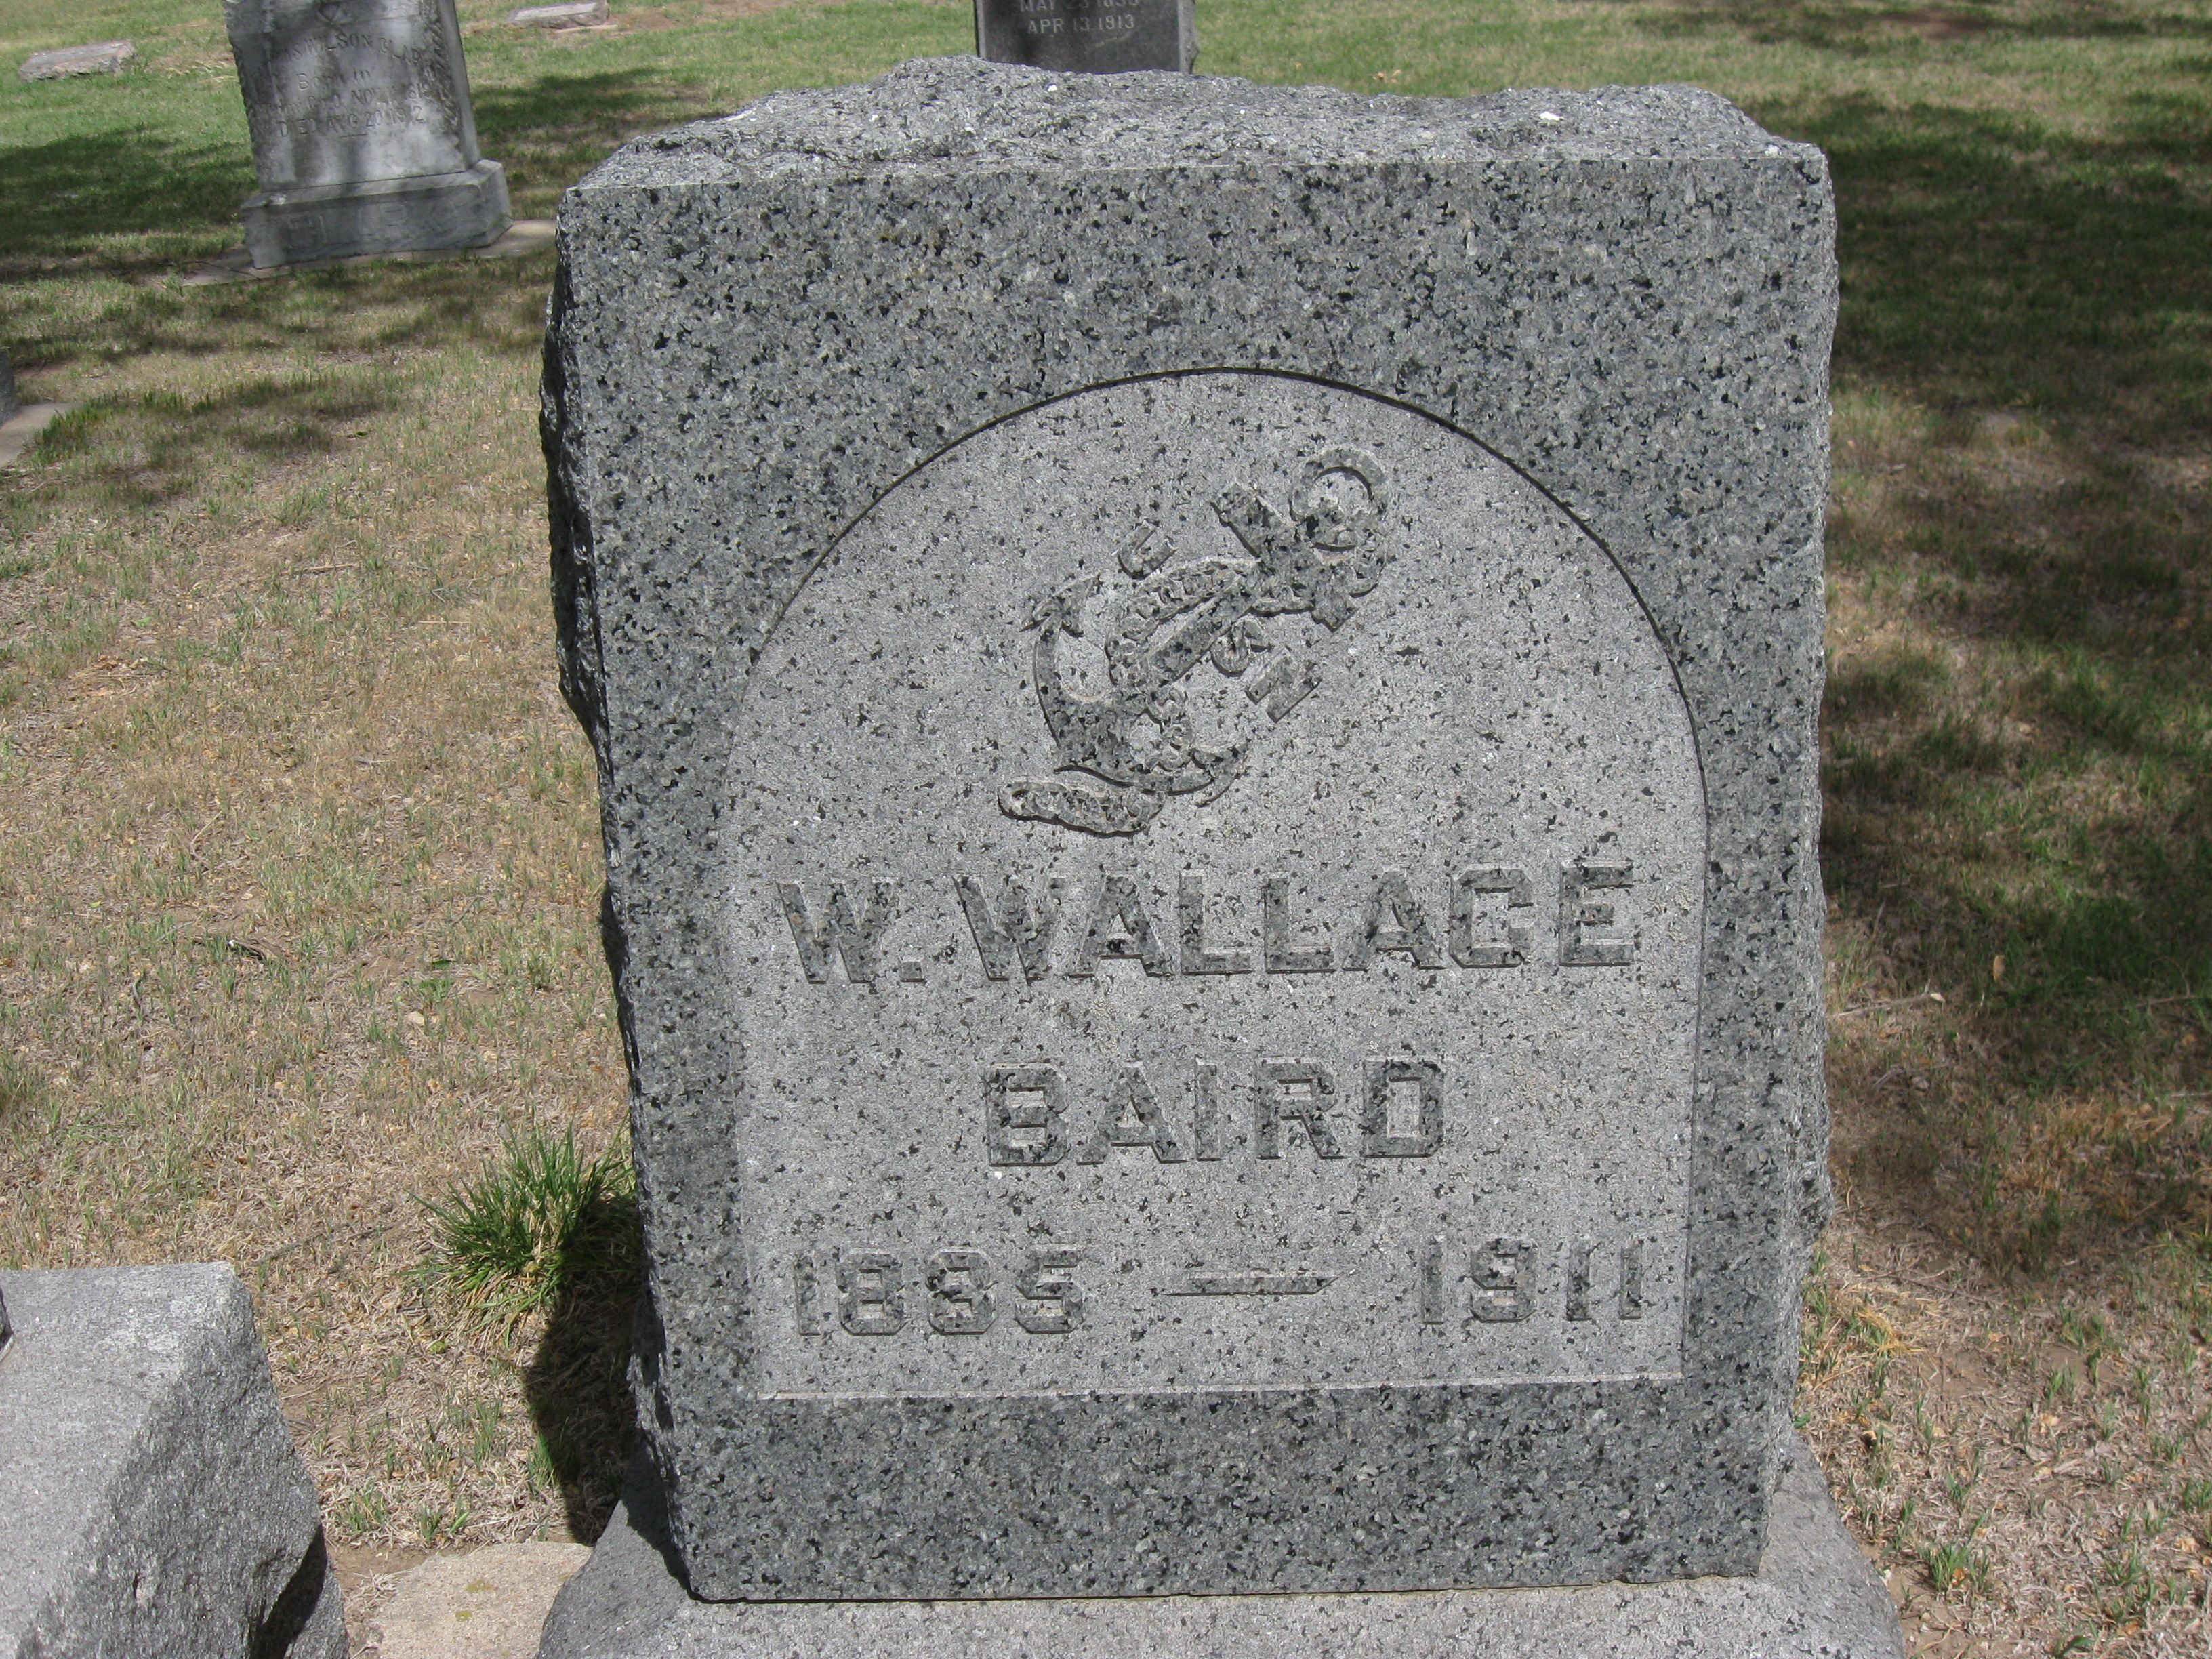 William Wallace Baird